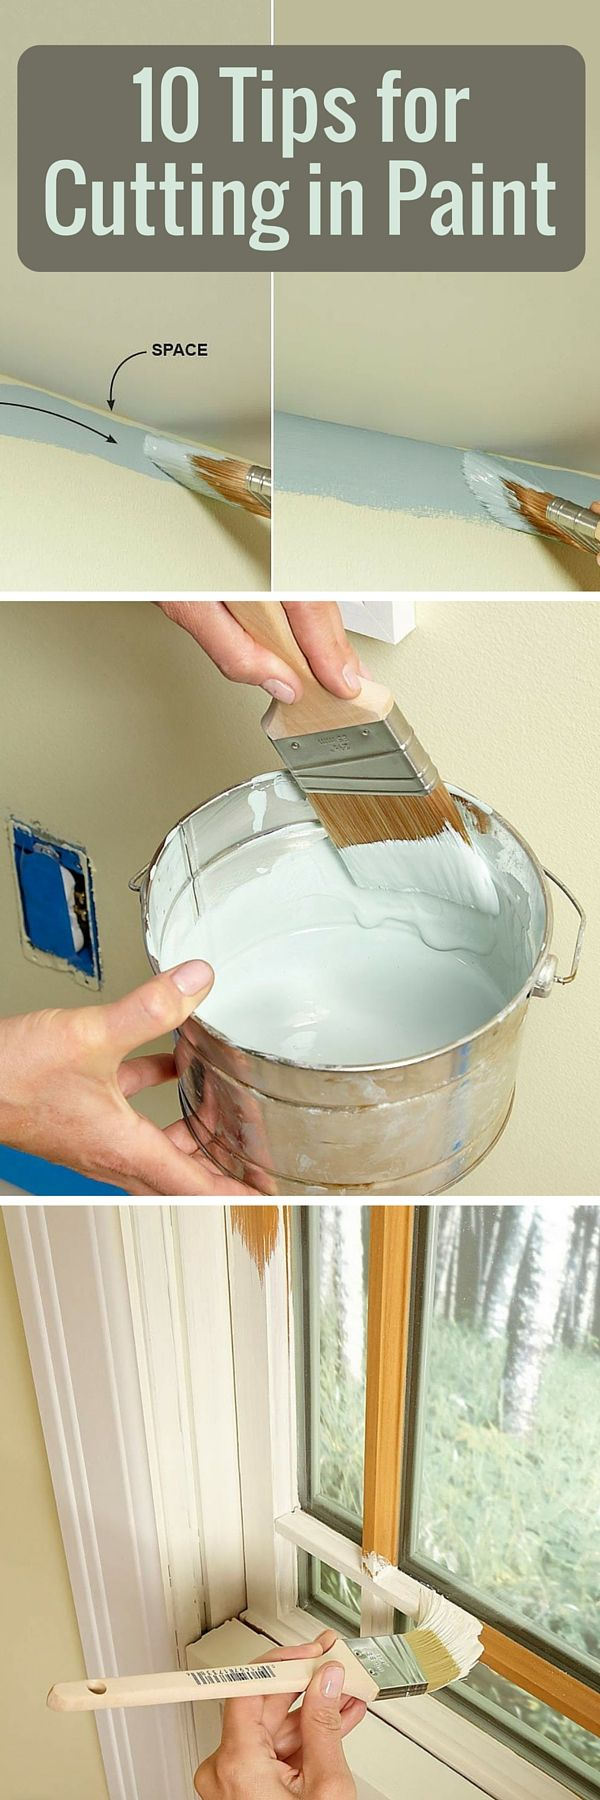 The Best Tips for Cutting in Paint Where beginners run into trouble is cutting in along ceilings, moldings and other areas that require a perfectly straight line of paint. We'll give you some tips and pointers to help you increase the speed and improve the accuracy of your cutting-in technique. http://www.familyhandyman.com/painting/techniques/the-best-tips-for-cutting-in-paint